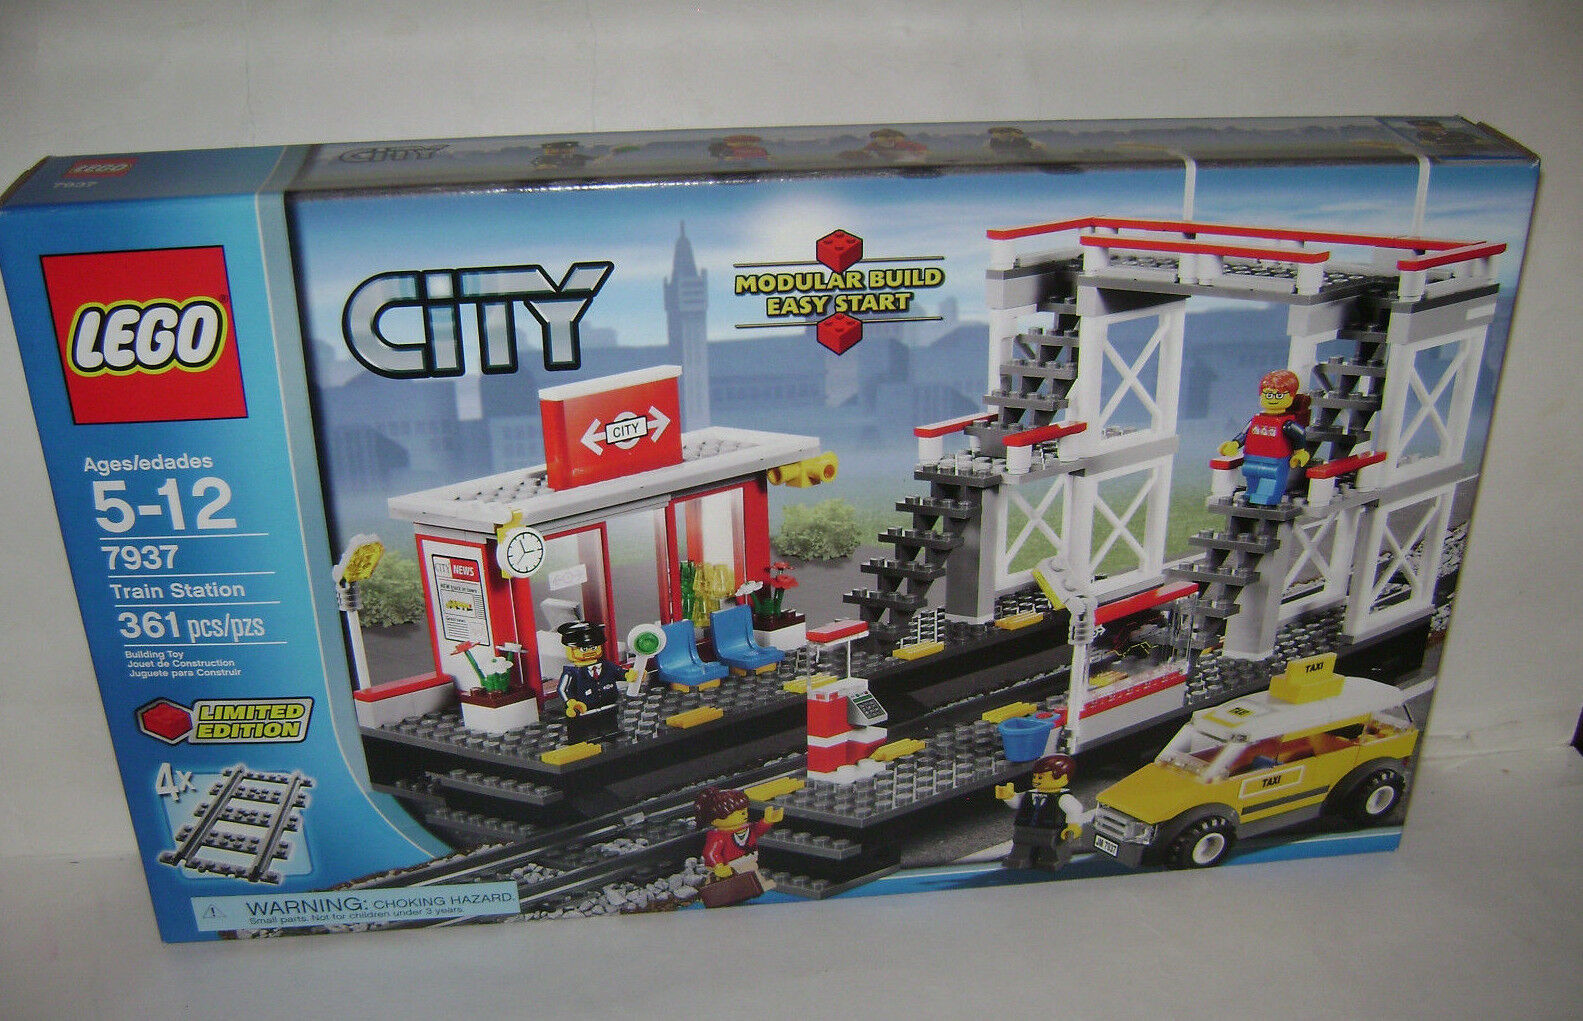 NEW 7937 Lego CITY Train Station LIMITED Building Toy SEALED BOX RETIRED RARE A